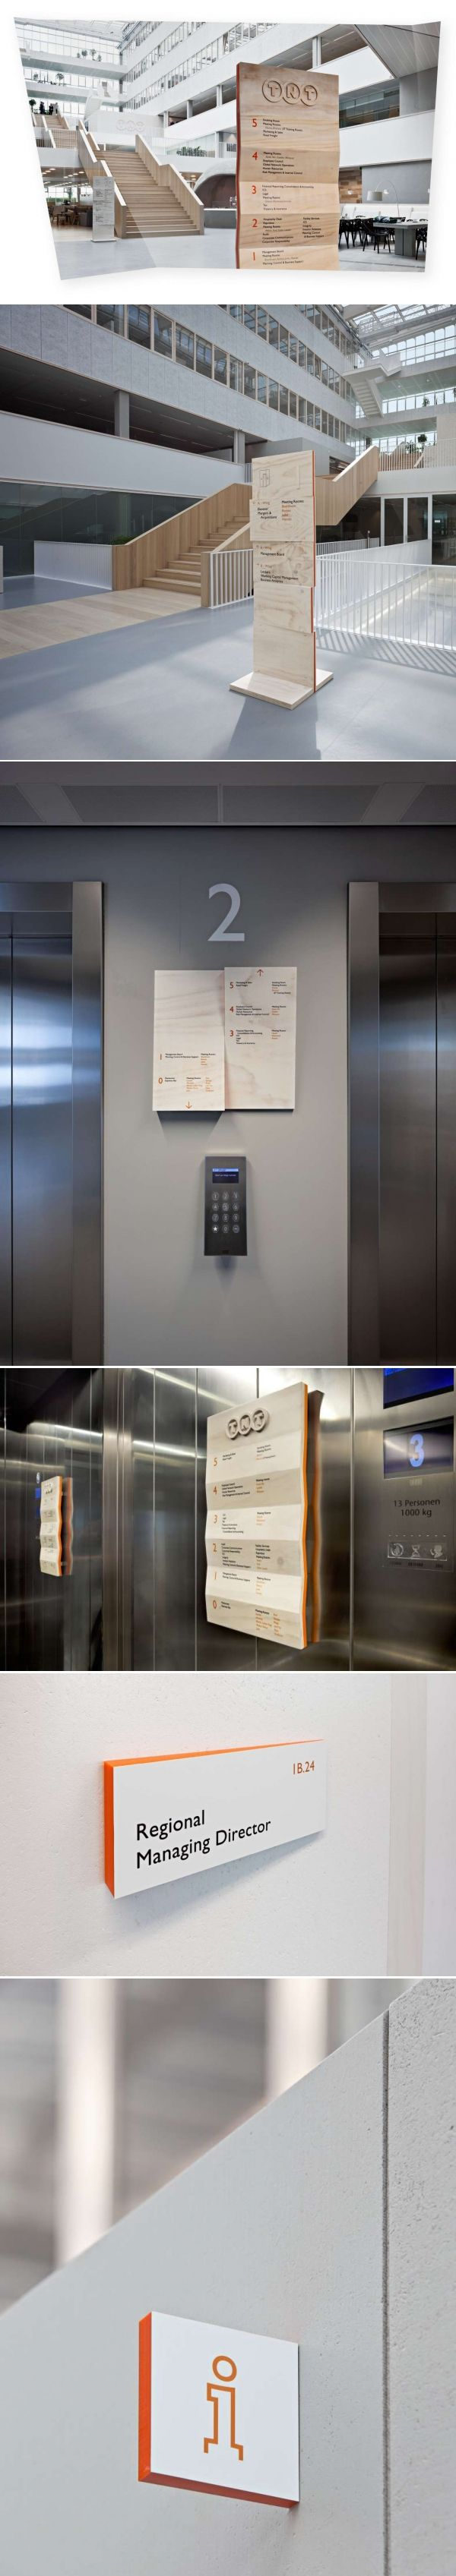 Wayfinding system at TNT green office